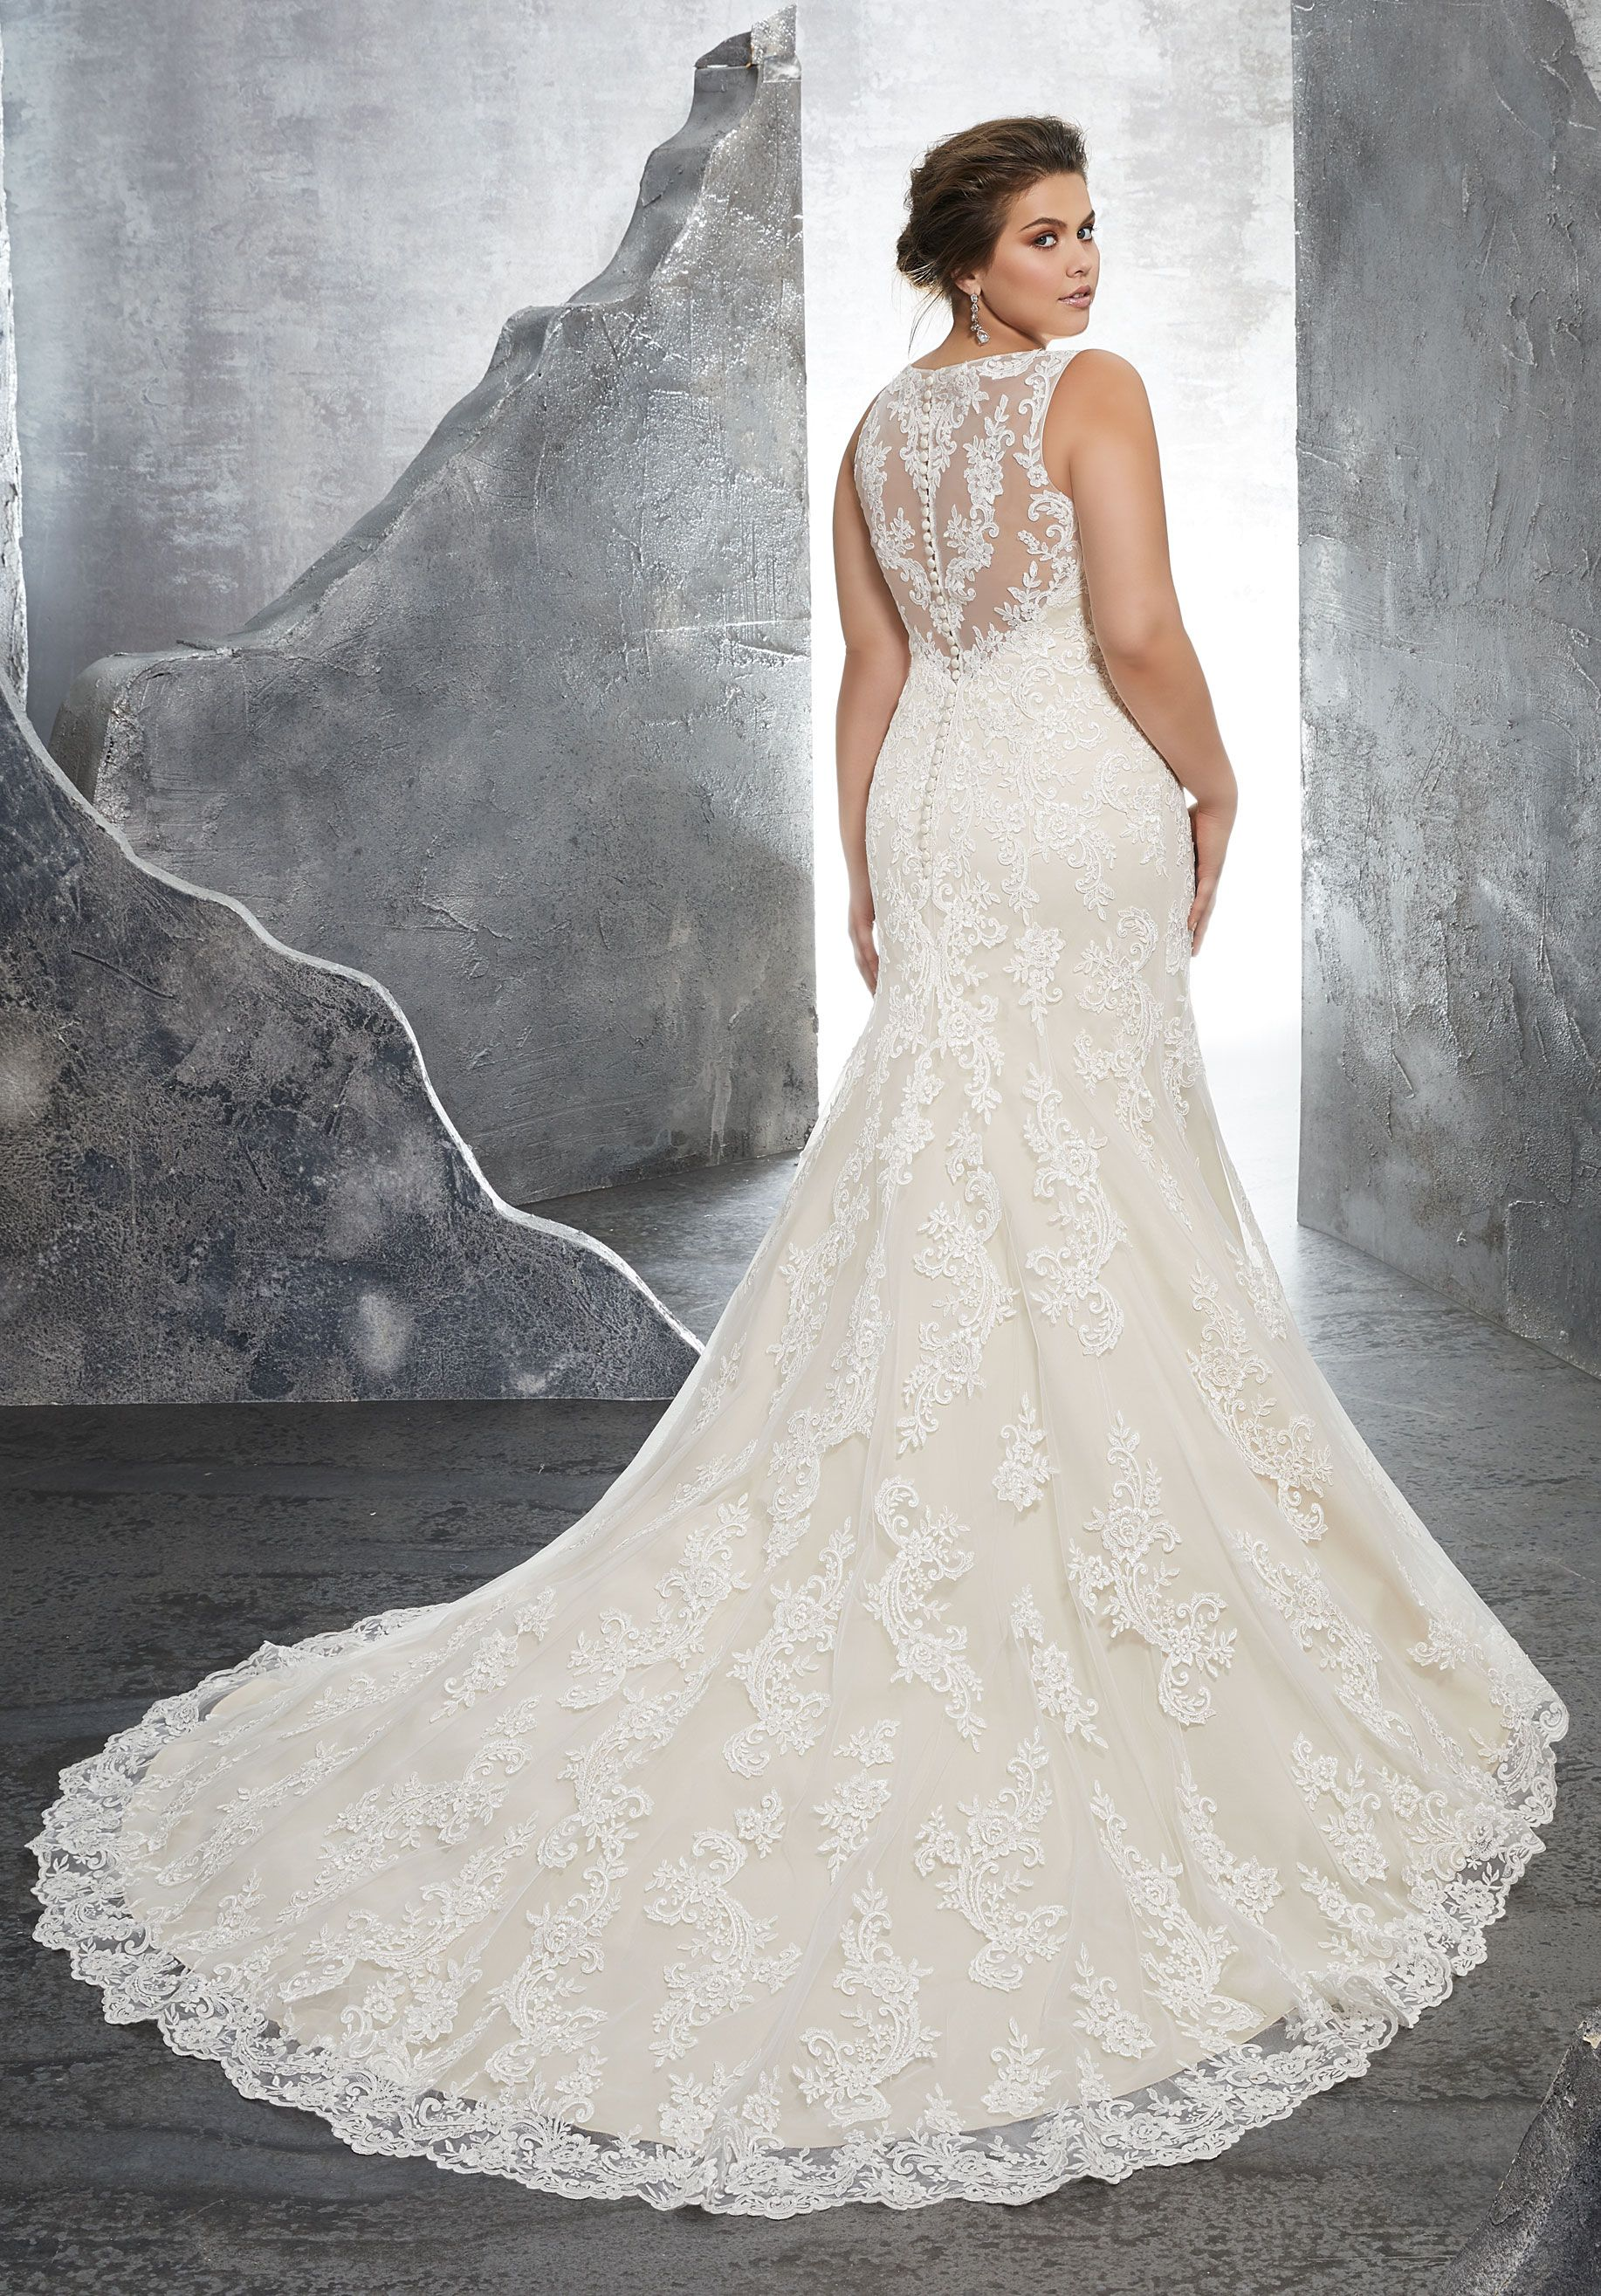 Form fitting lace wedding dresses  A Unique Romantic Dress  Everything EngagementWeddings